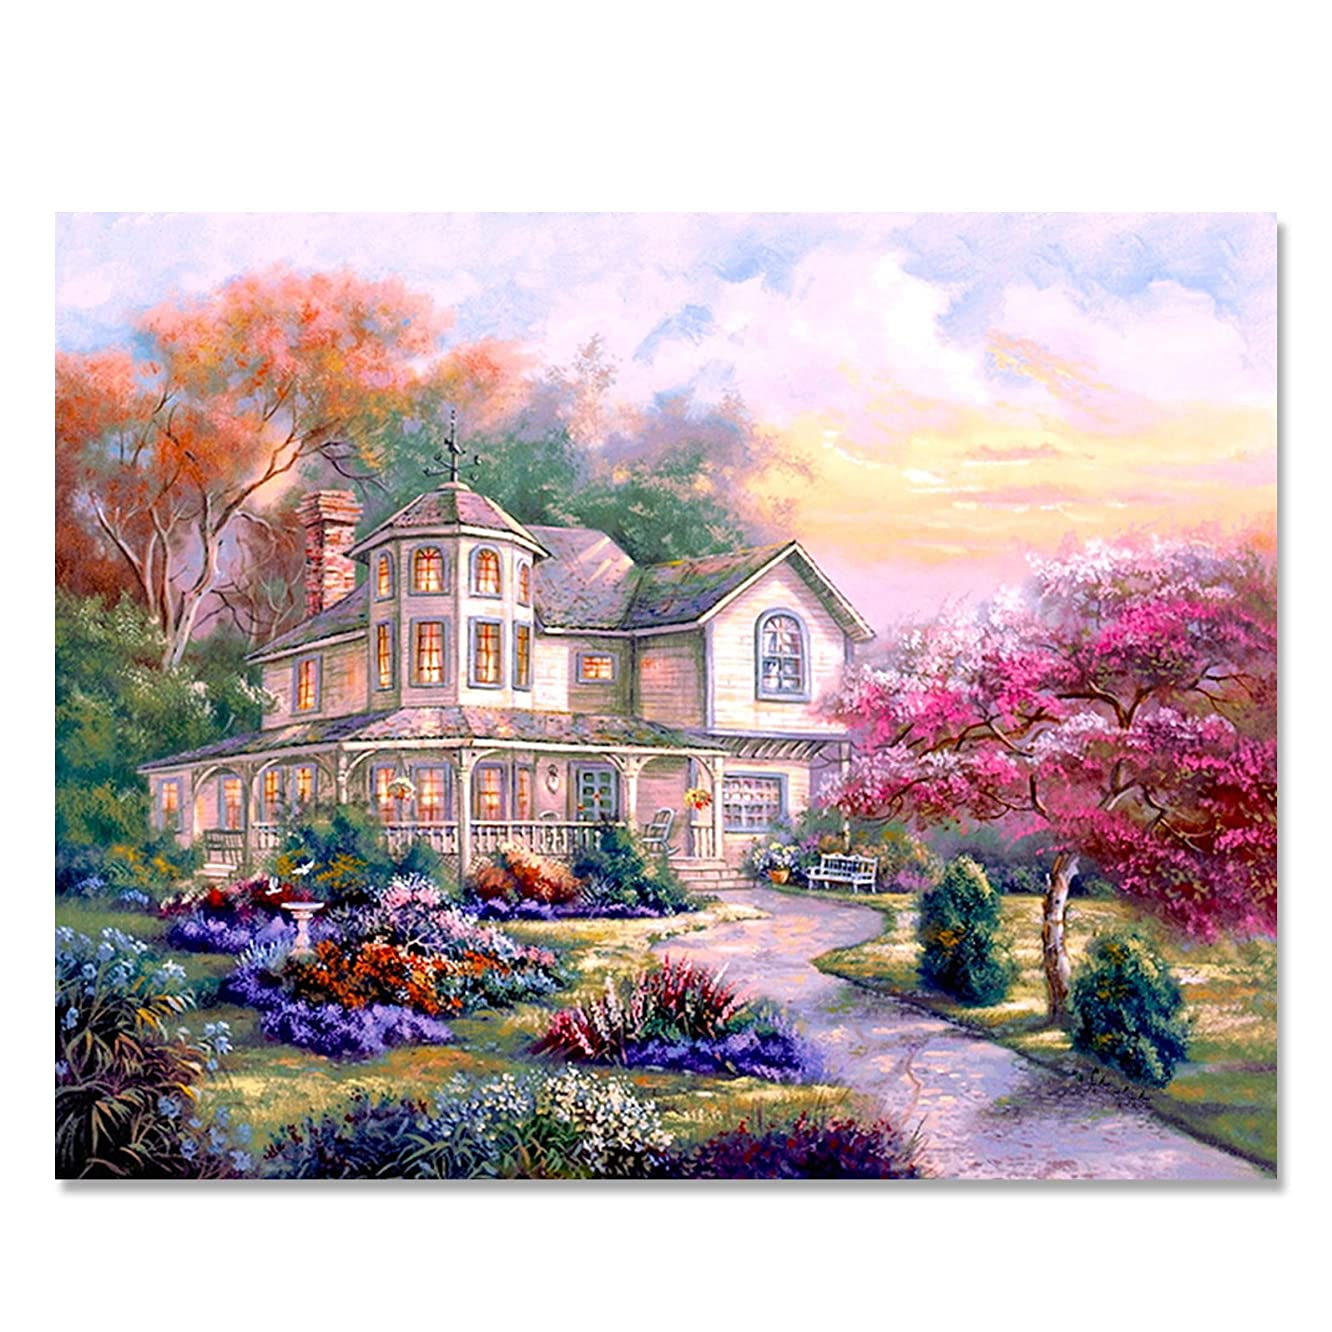 SuperDecor DIY Oil Paint by Numbers Kit for Adults Beginner Kids - DIY Oil Painting 16x20 Inch House